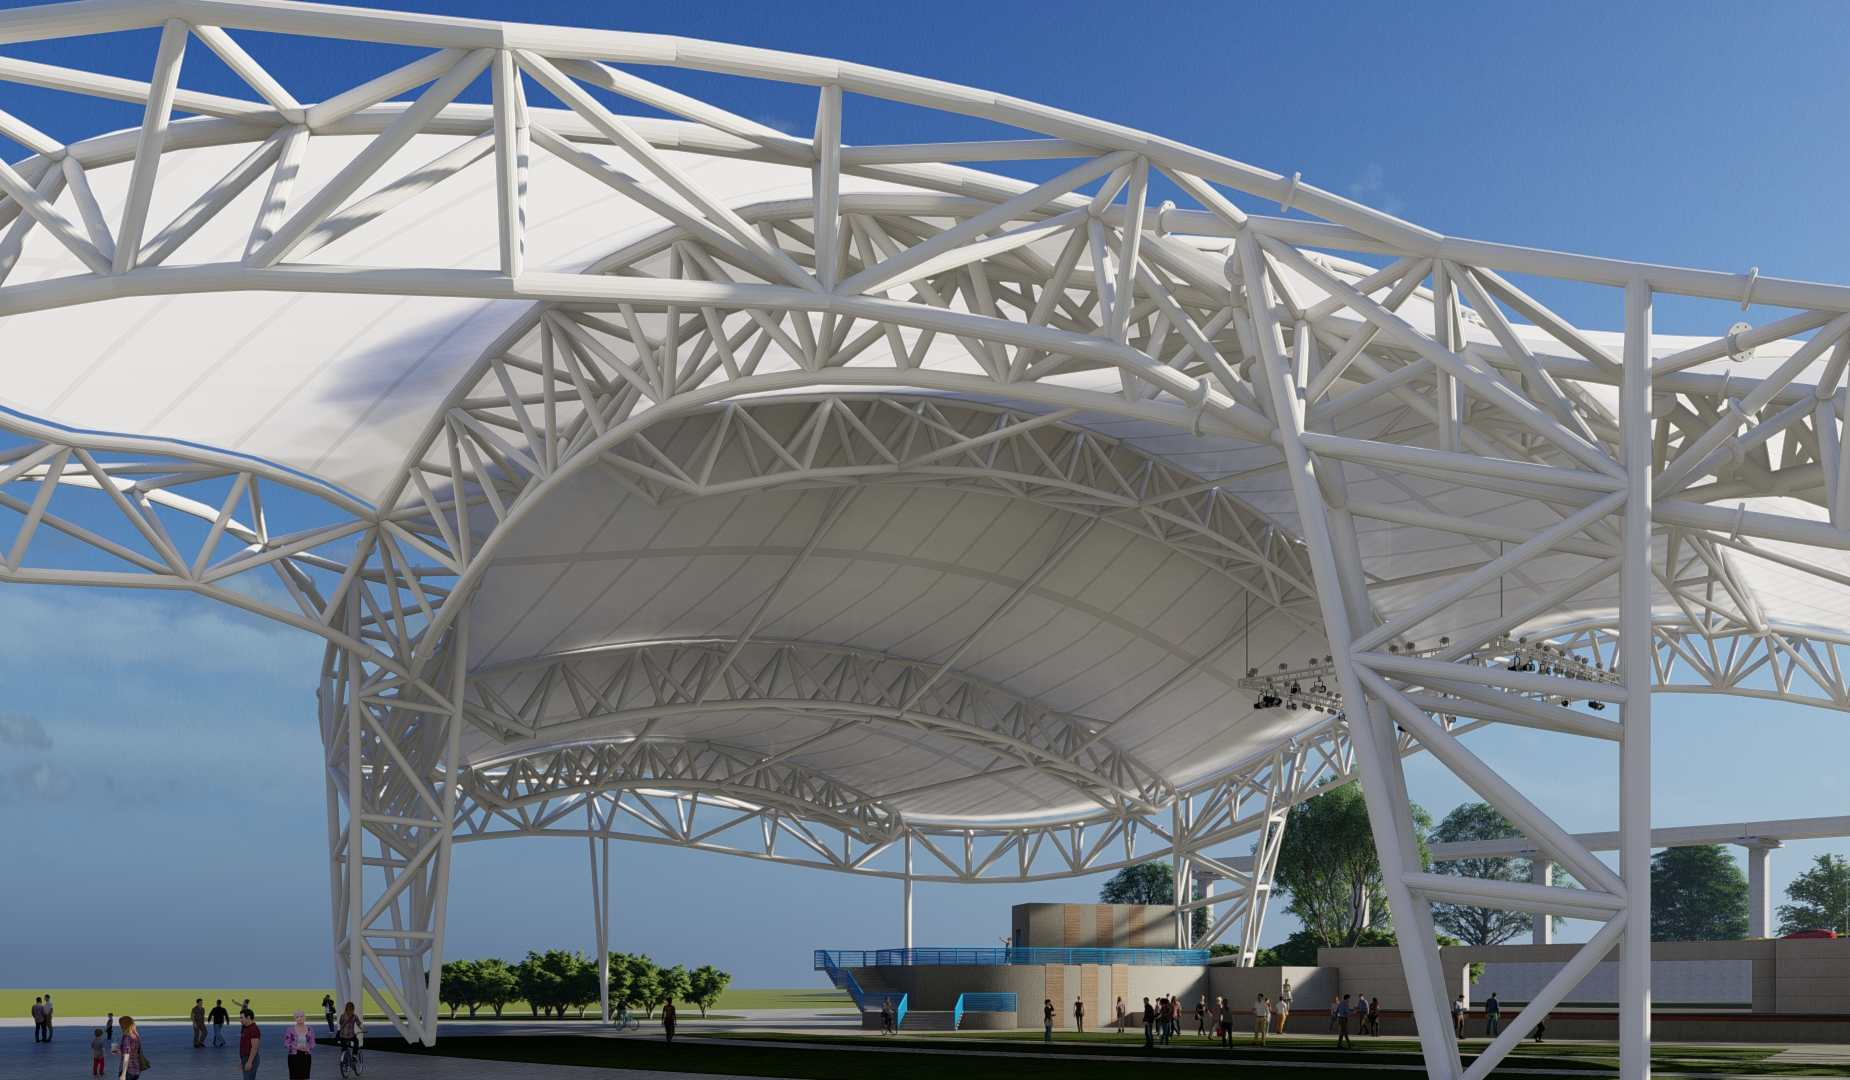 Birdair Tensioned Membrane Roof Tensotherm PTFE